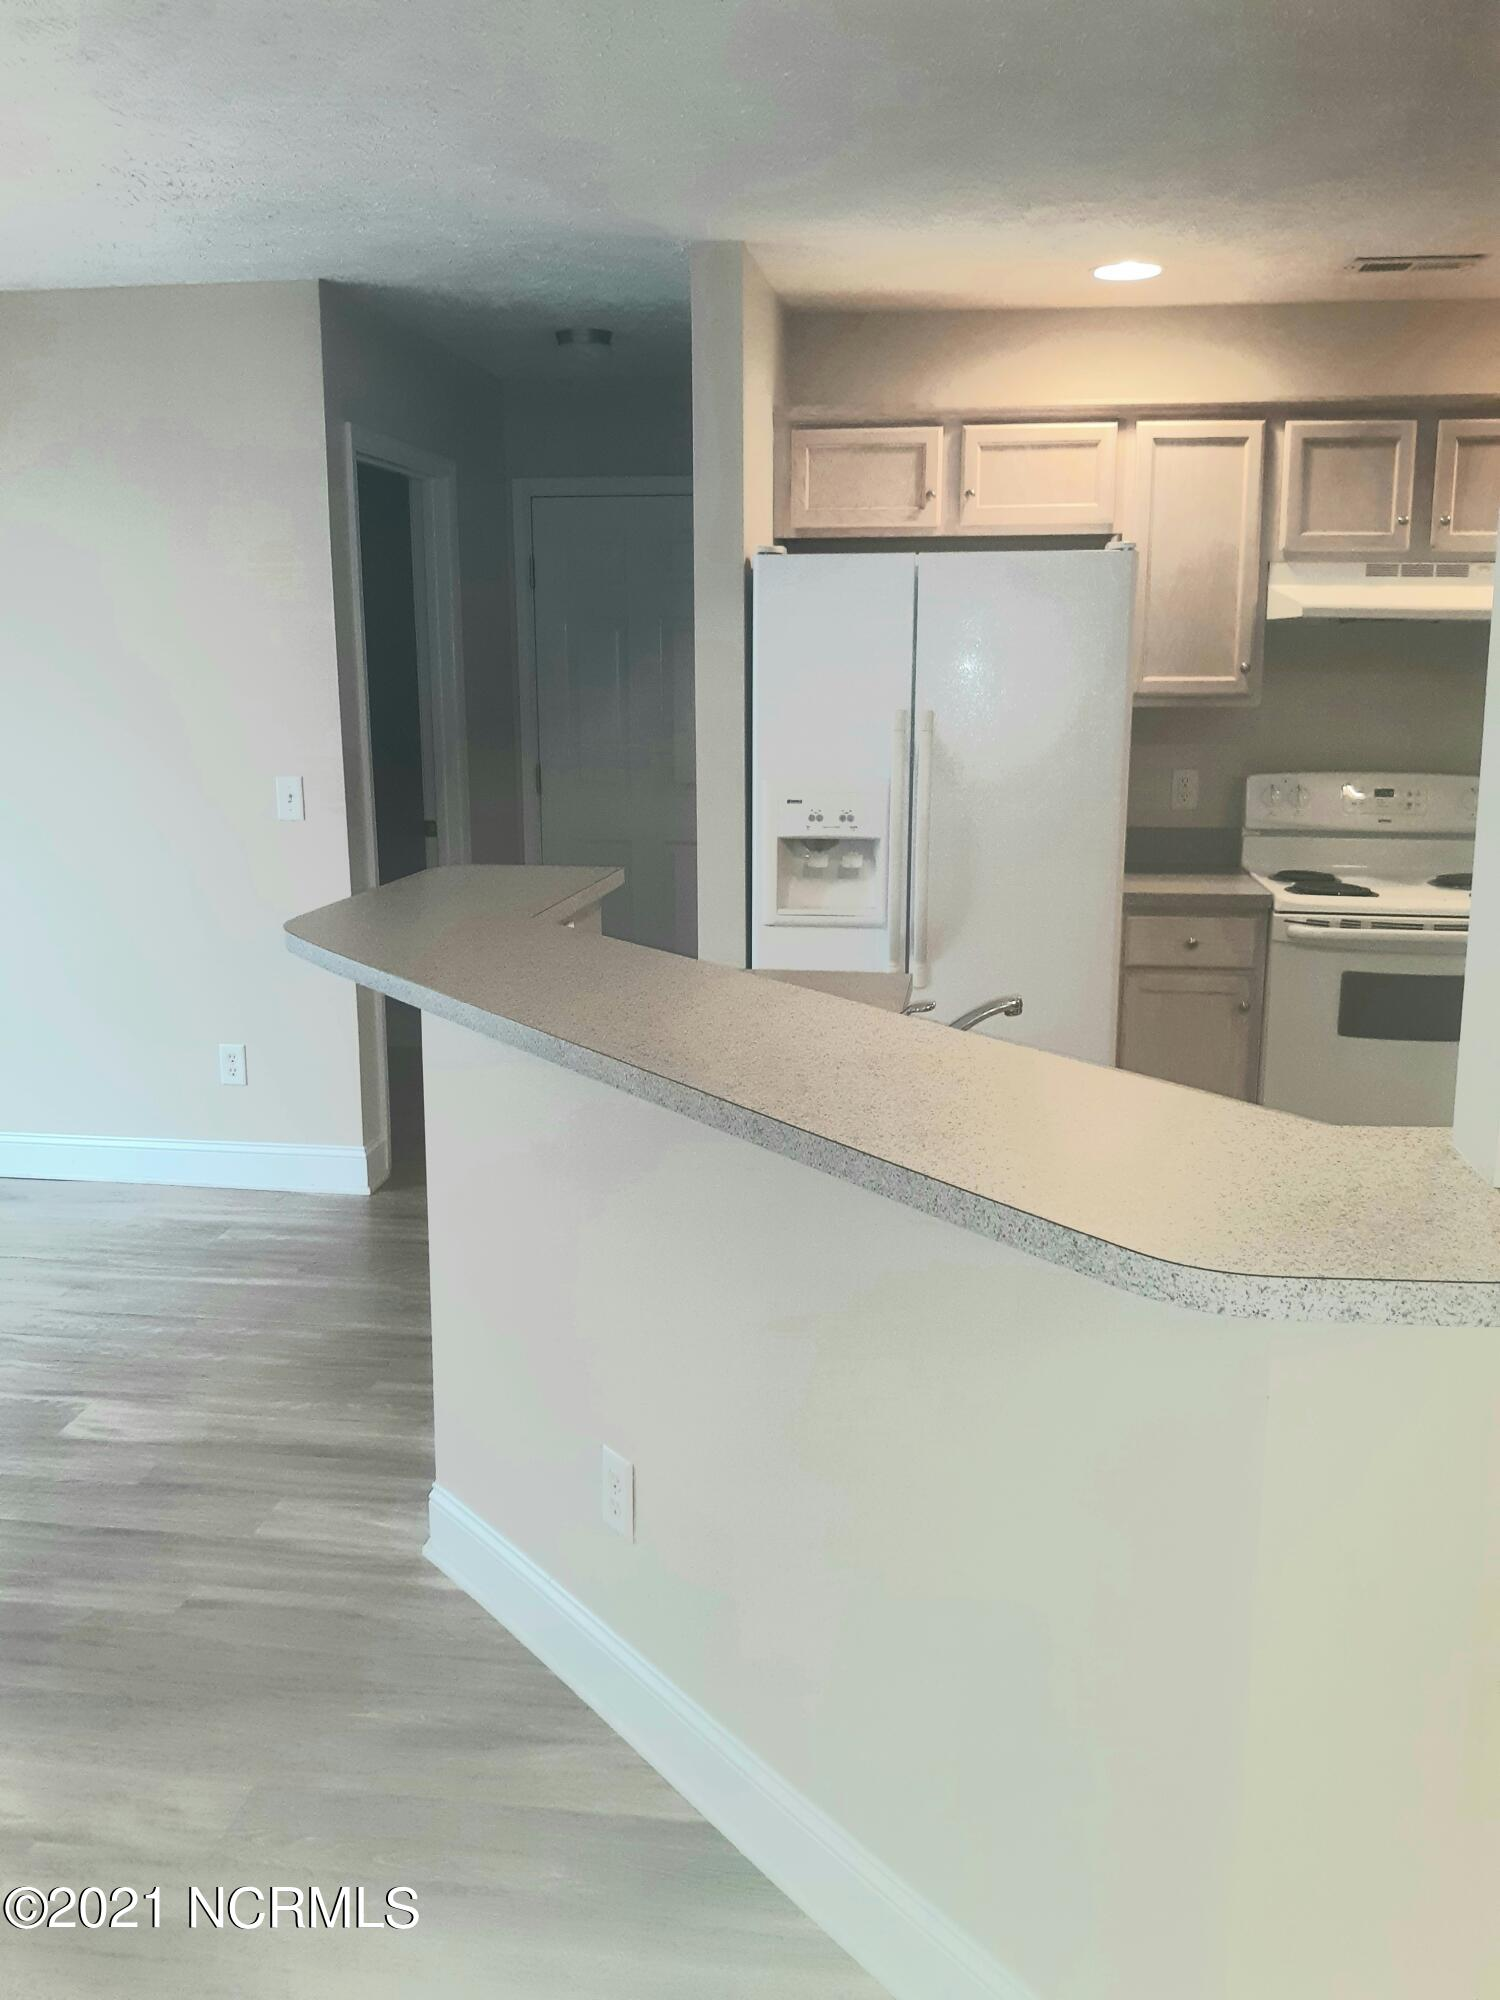 8102 St Barts Court, Wilmington, North Carolina 28412, 3 Bedrooms Bedrooms, 8 Rooms Rooms,2 BathroomsBathrooms,Single family residence,For sale,St Barts,100286514